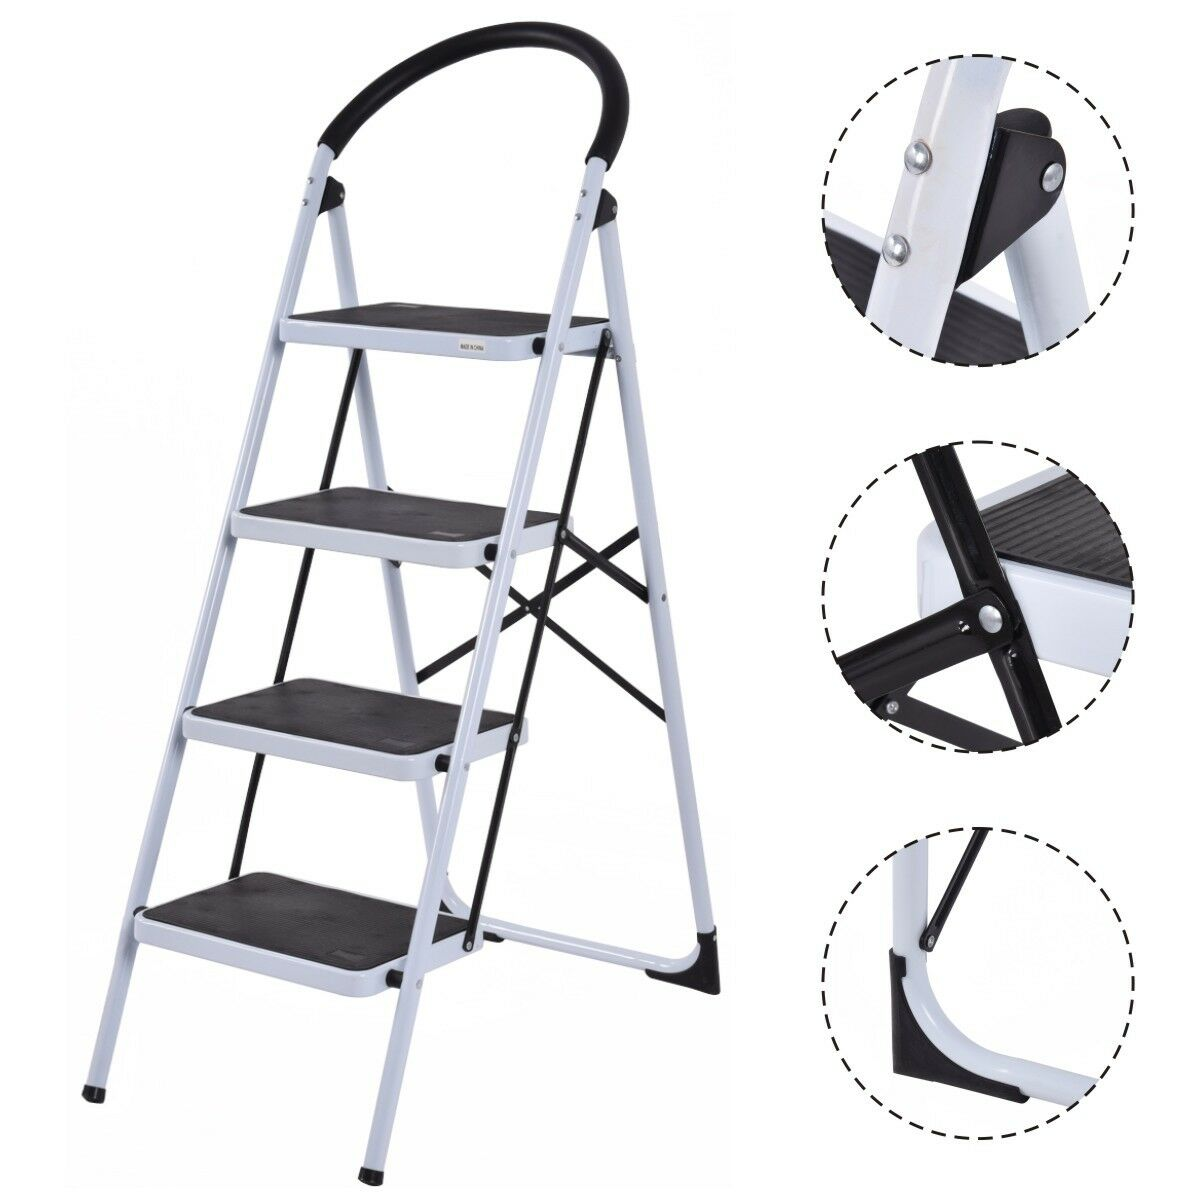 4 Step Ladder Folding Steel Step Stool Anti-slip Heavy Duty with 330Lbs Capacity